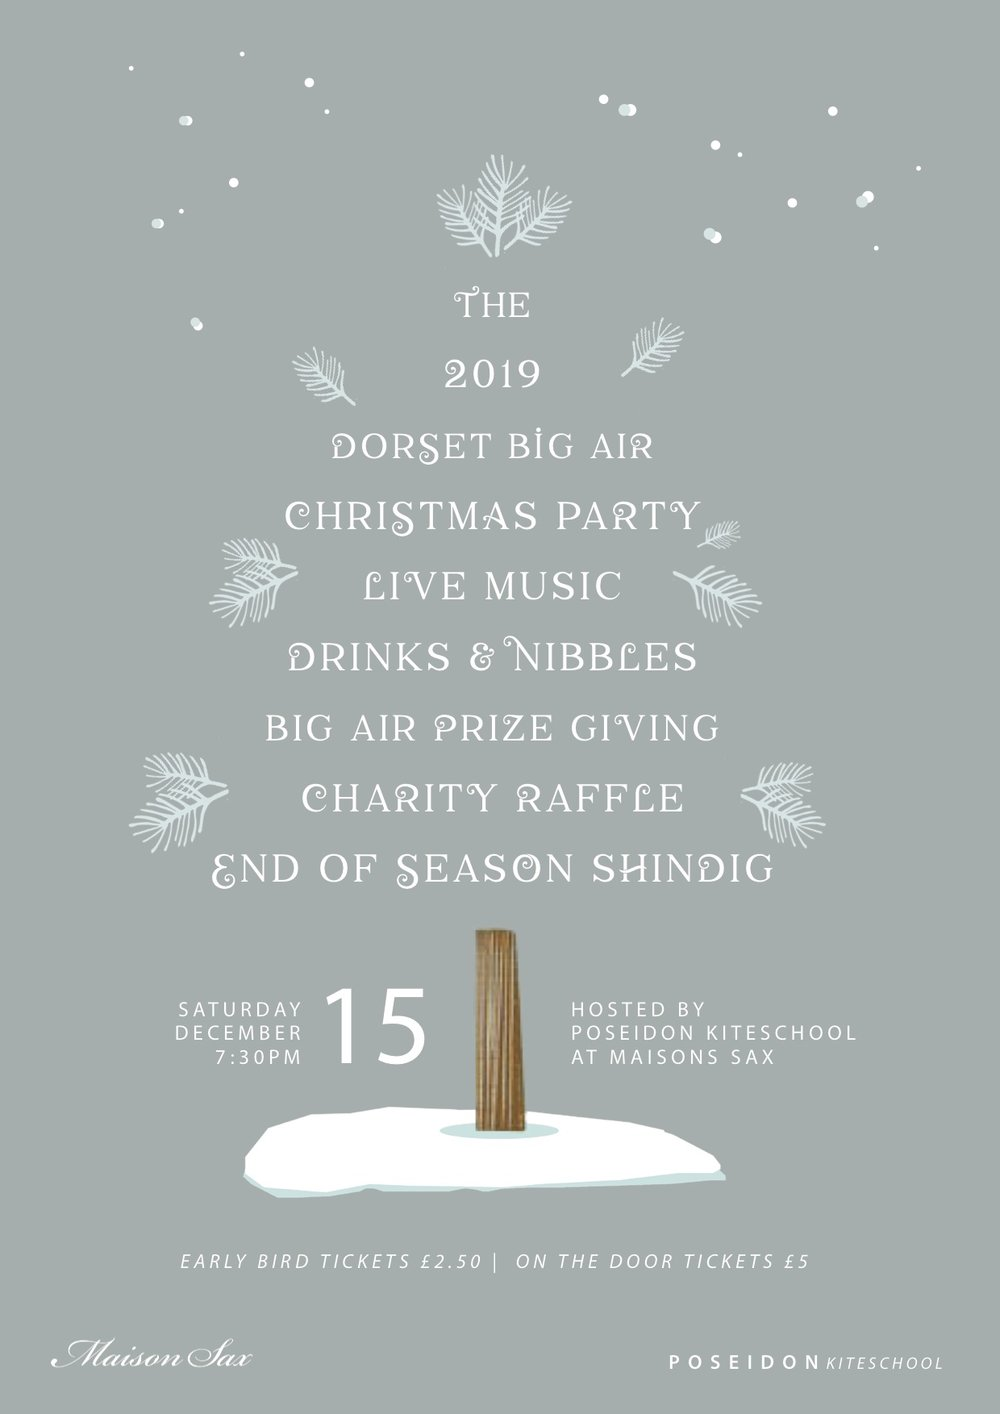 Christmas-party-poster.jpg